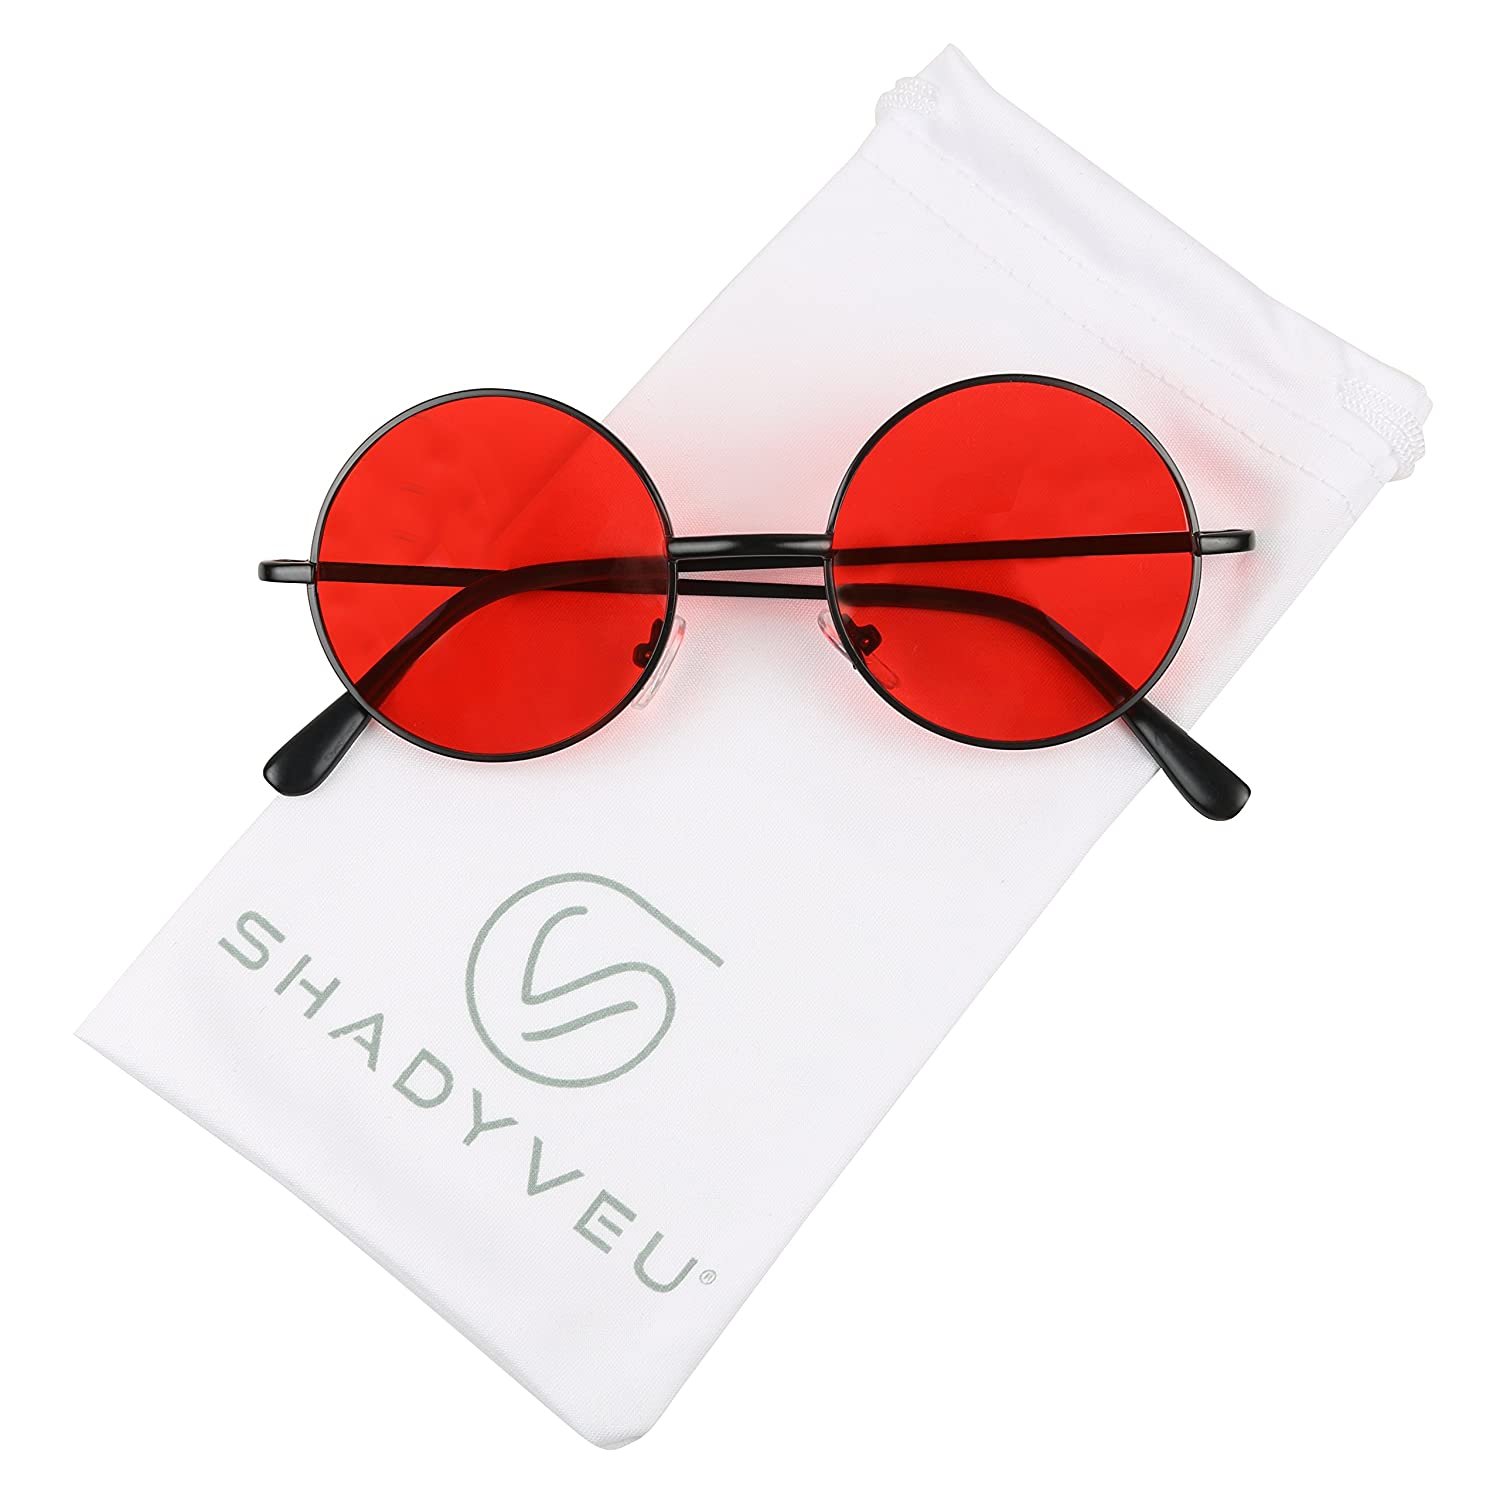 Amazon.com: ShadyVEU – Gafas de sol estilo retro colorido ...